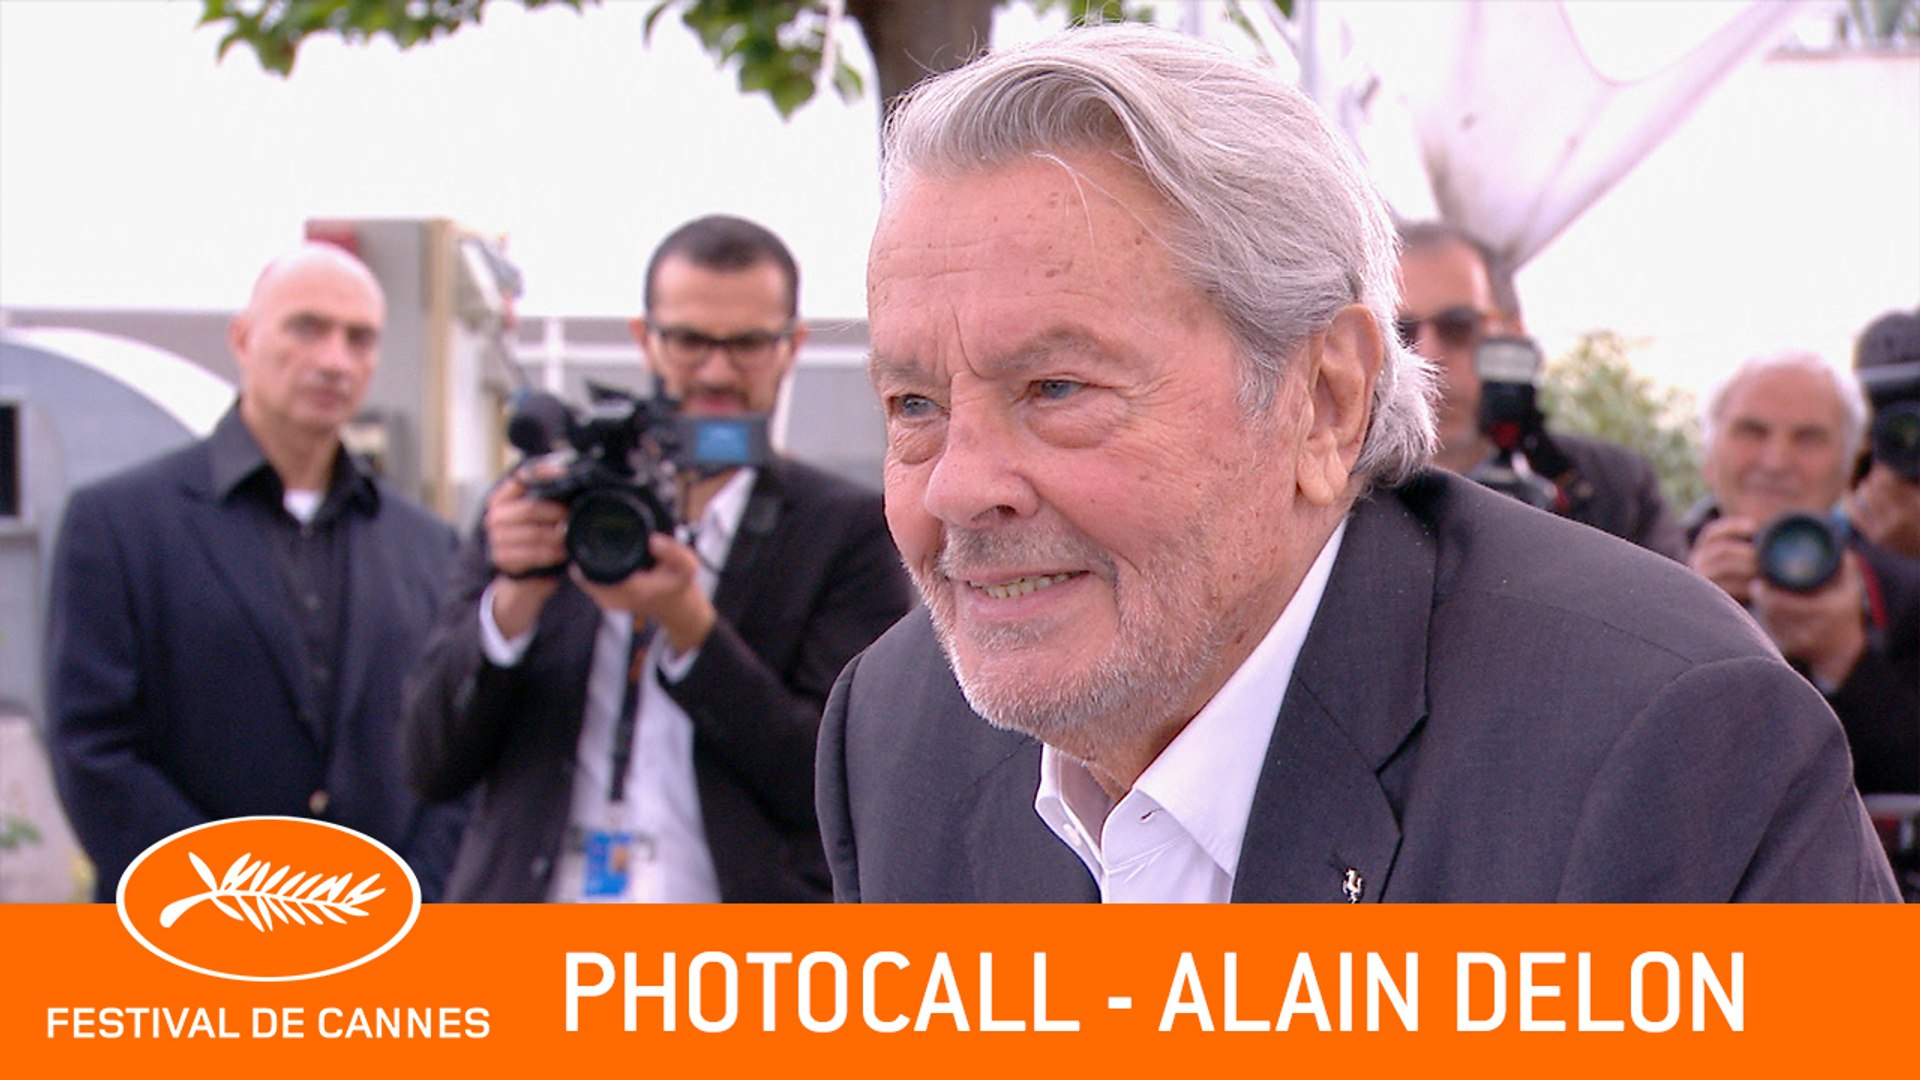 ALAIN DELON - Photocall - Cannes 2019 - VF